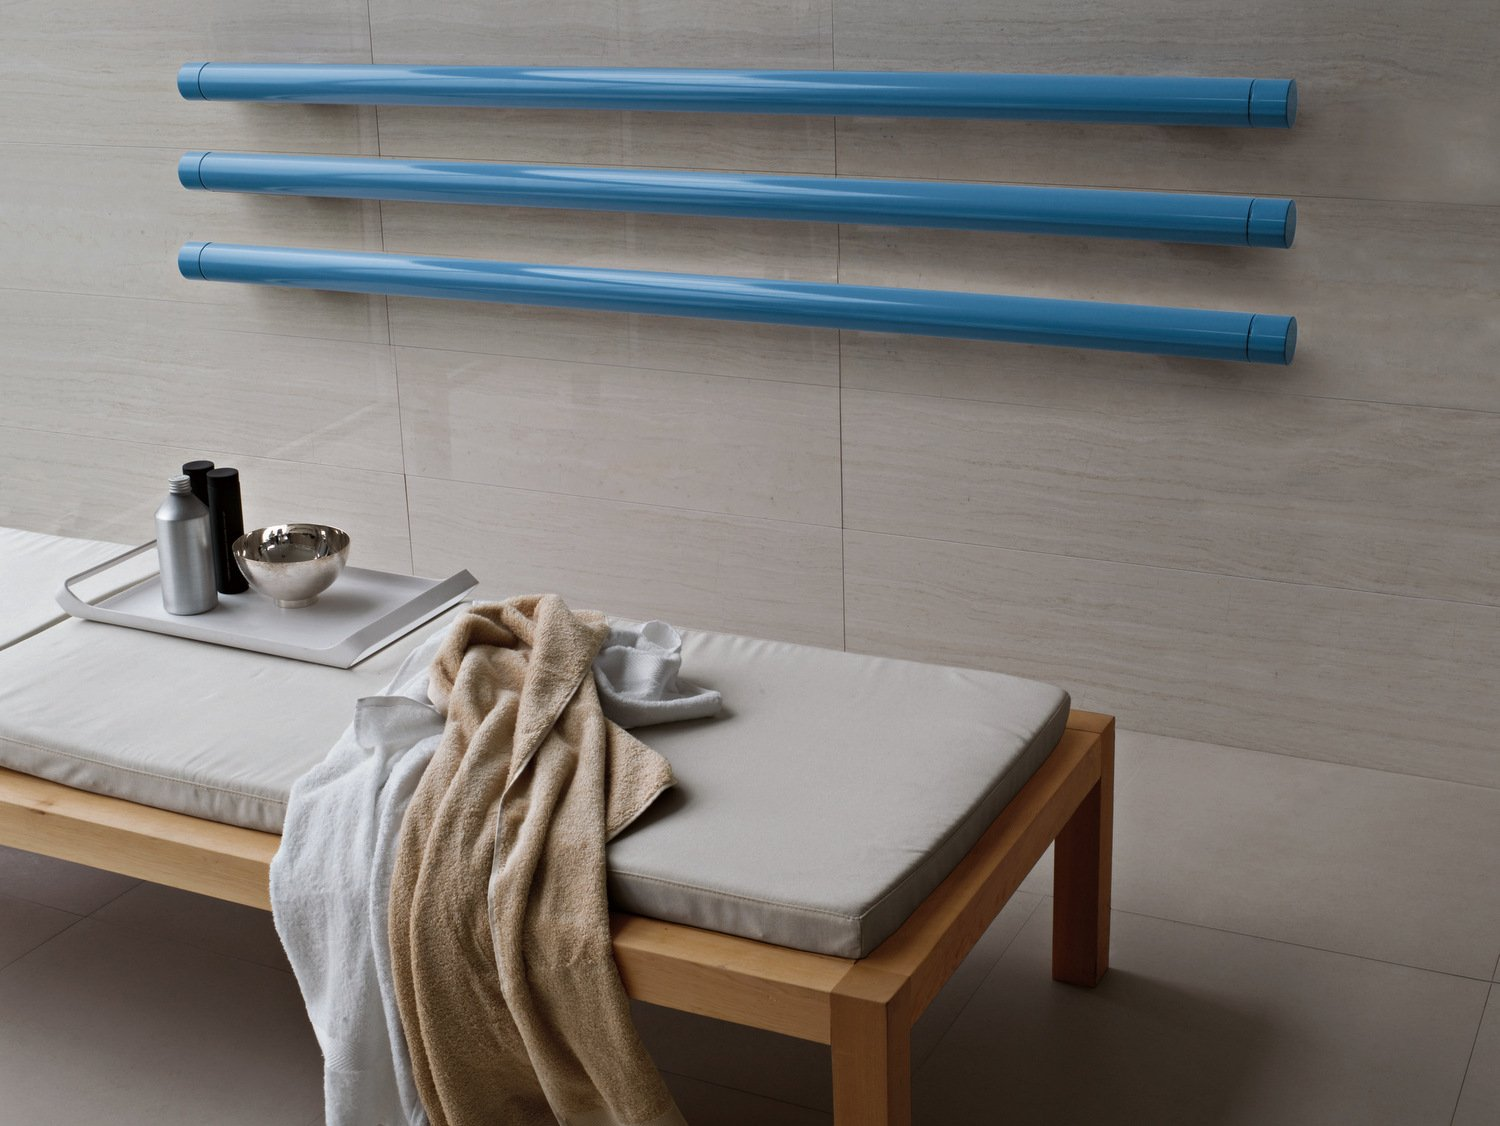 T b t termoarredo orizzontale by tubes radiatori design - Termoarredo orizzontale bagno ...